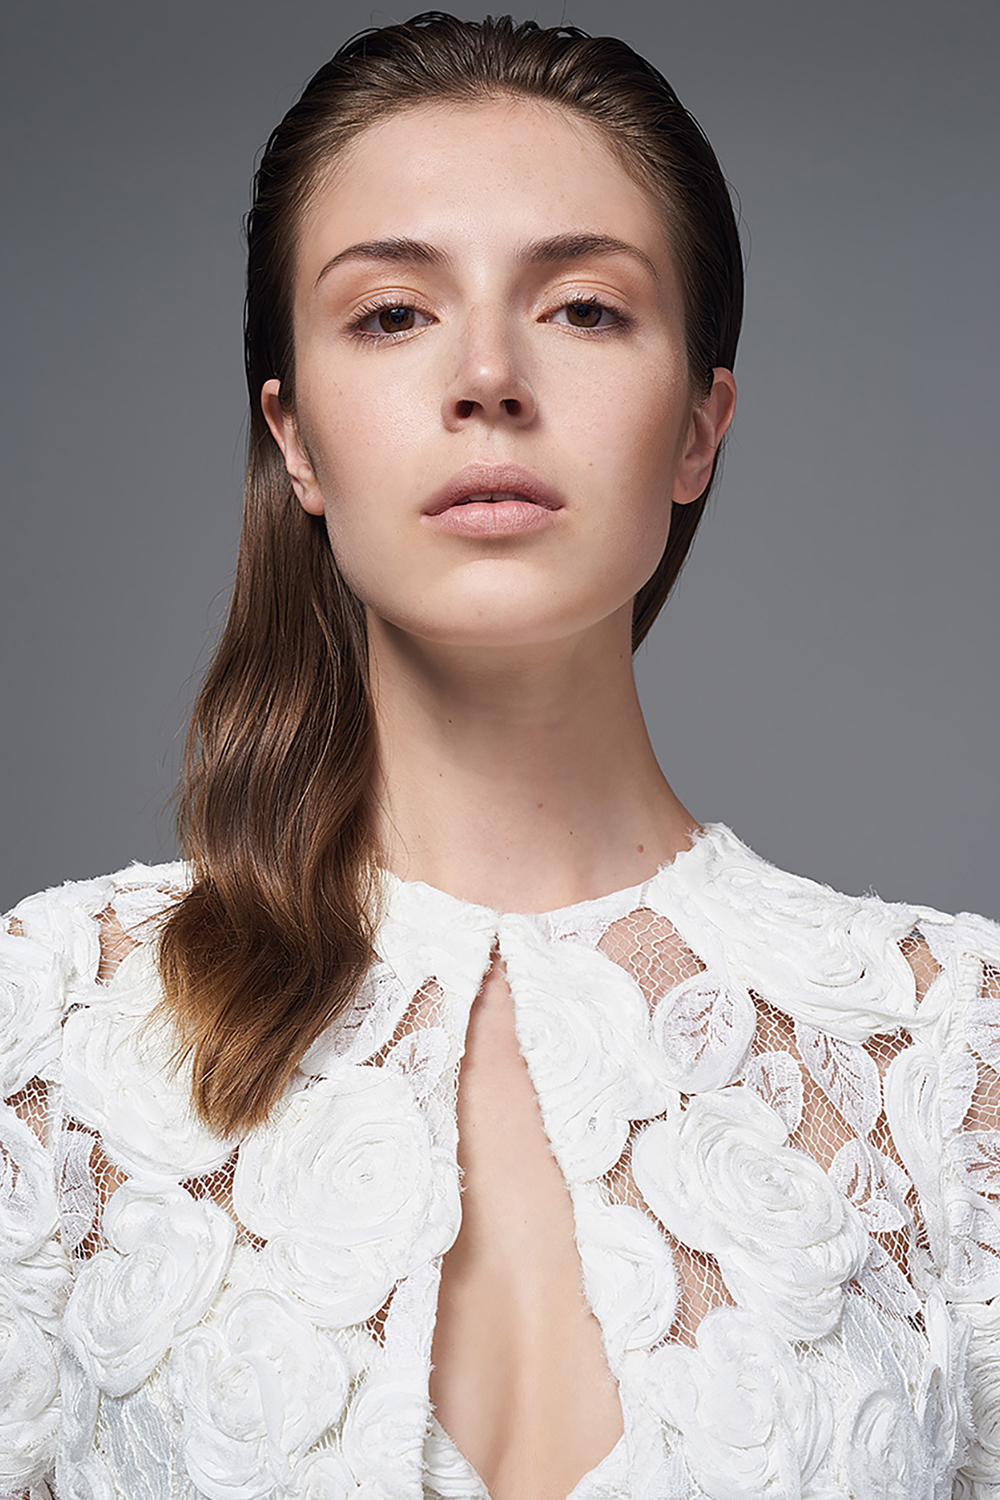 THE ROSA APPLIQUE BOLERO. BRIDAL WEDDING DRESS BY HALFPENNY LONDON